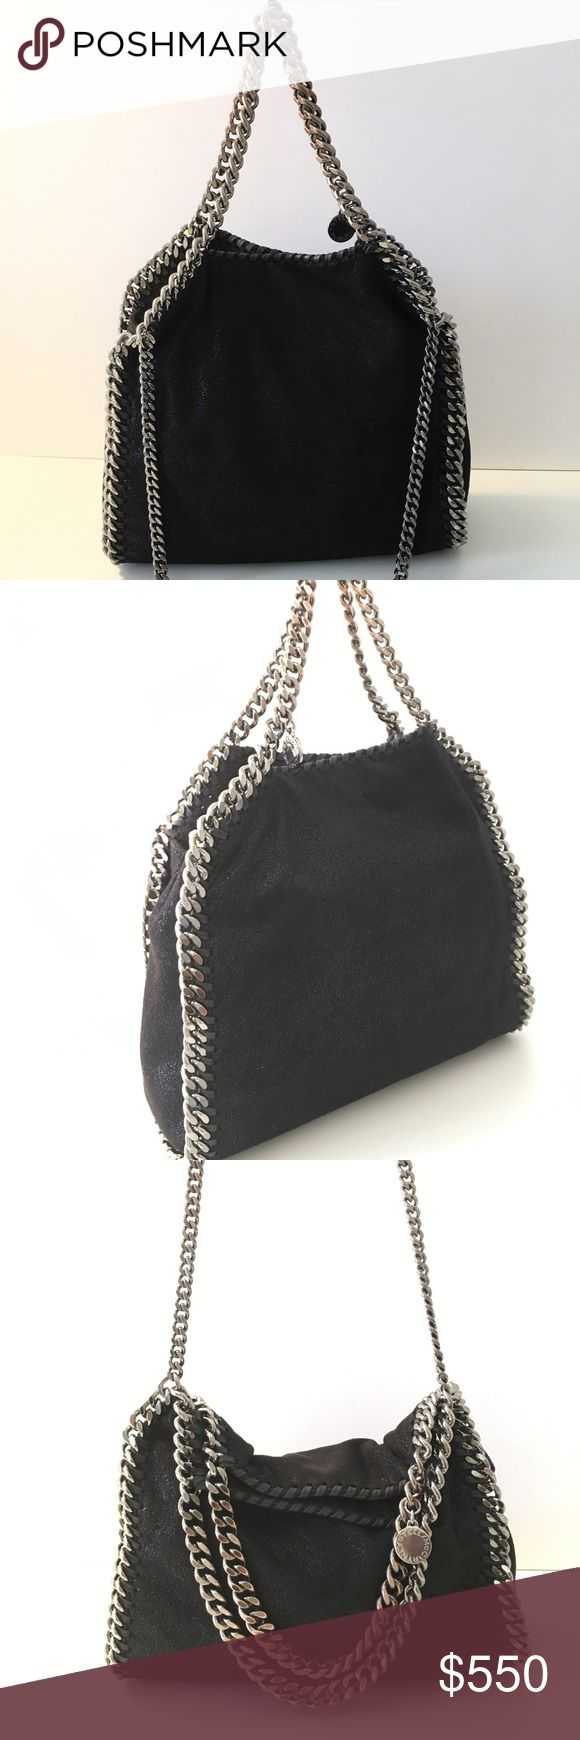 ⚡️Flash Sale⚡️ Stella McCartney Mini Falabella Bag Mini Falabella - Shaggy Deer' Faux Leather Tote handbag purse  STELLA MCCARTNEY Authentic!  Condition: Please see all photos for representation of the condition. -Some oxidation of the handle hardware (see         photos)  use zoom -Dust Bag not included.  Details: Softly structured tote features gleaming chain edging, top carry handles and a longer strap.  💖-Please view all photos before purchasing. Stella McCartney Bags Totes